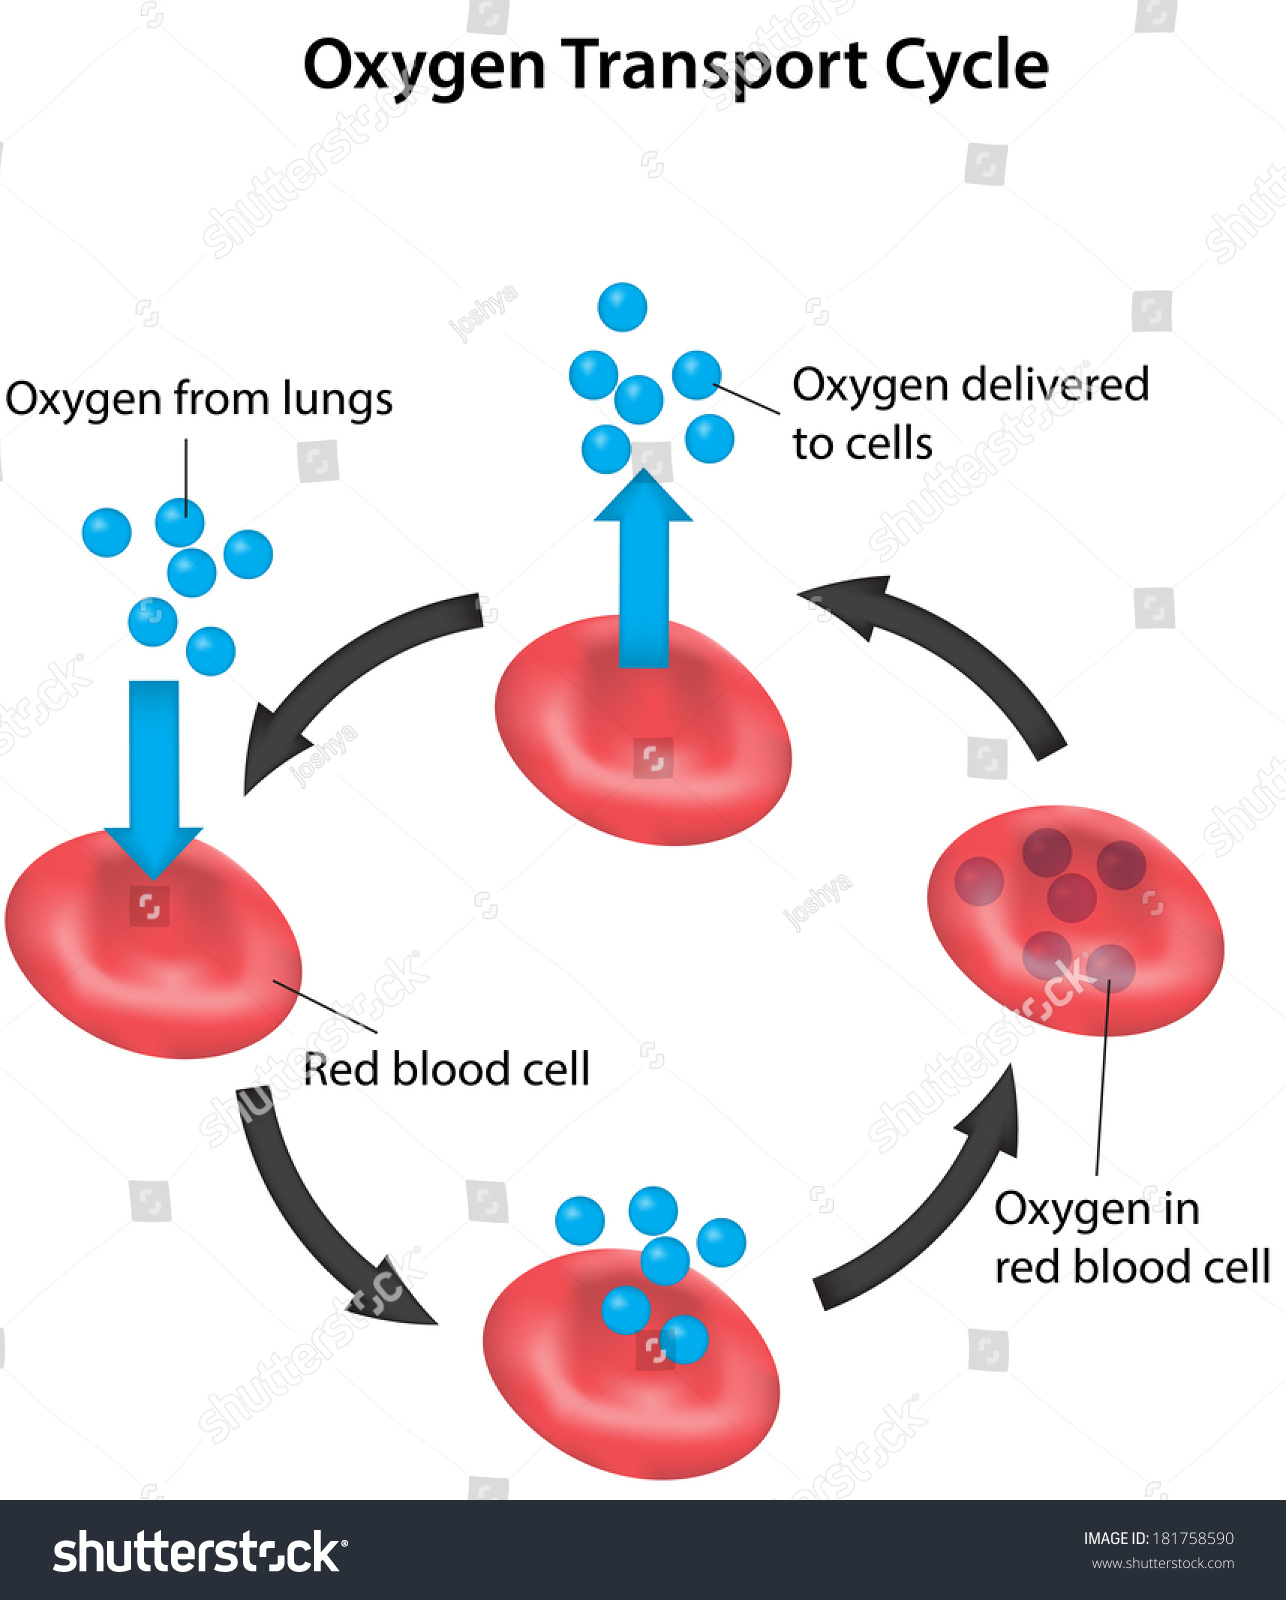 Oxygen Transport Cycle Labeled Diagram Stock Photo